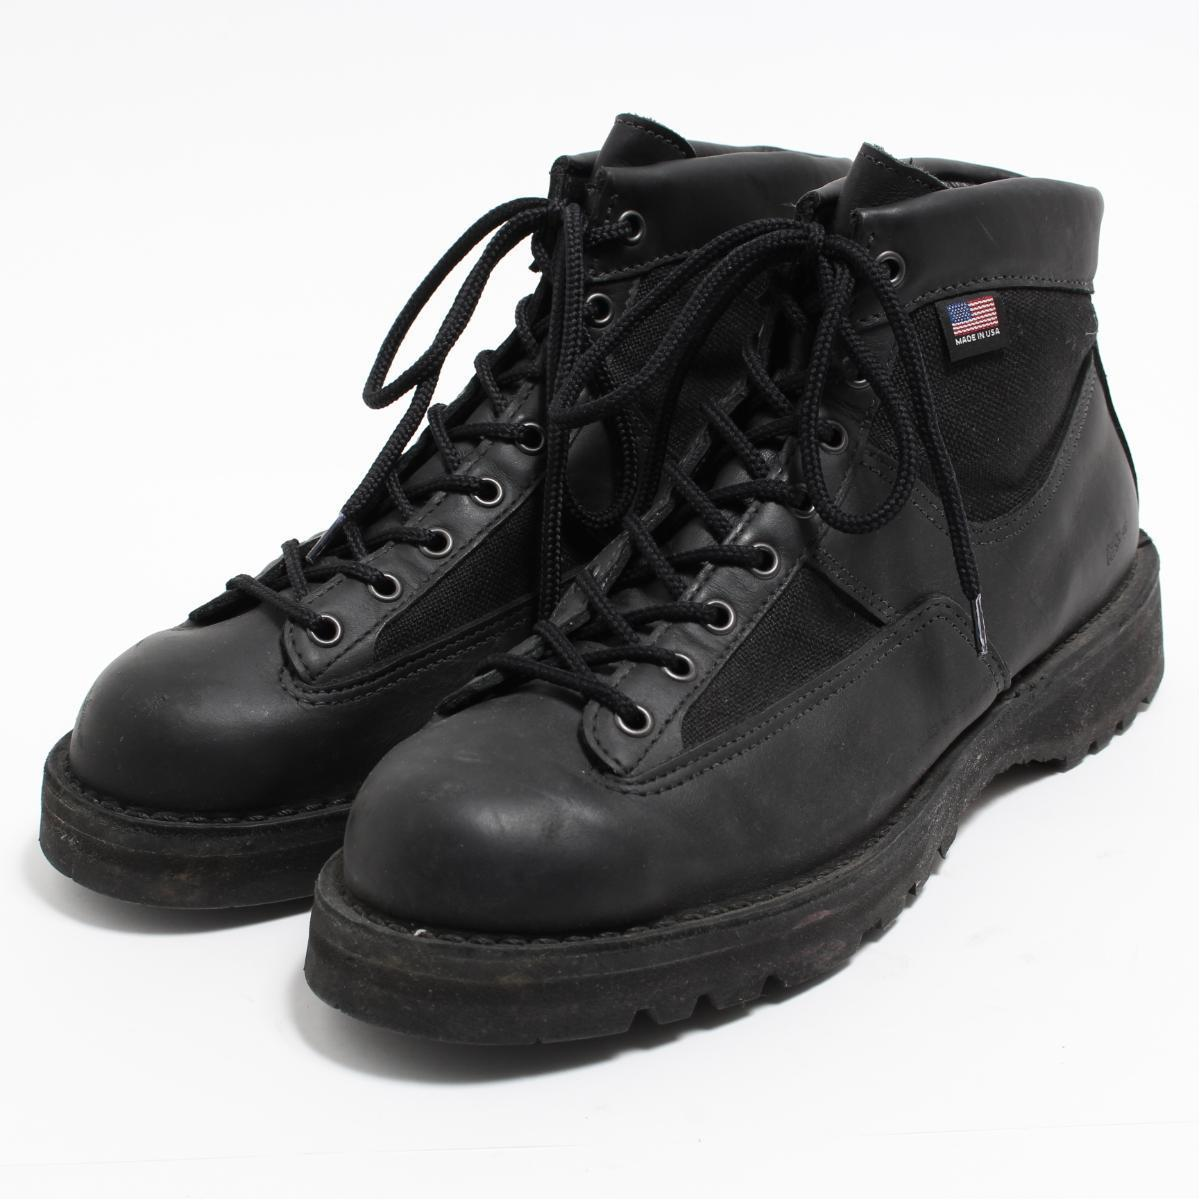 0bc0e38e063 9.5EE men 27.5cm /boo7164 made in Danner DANNER 25200 PATROL work boots USA